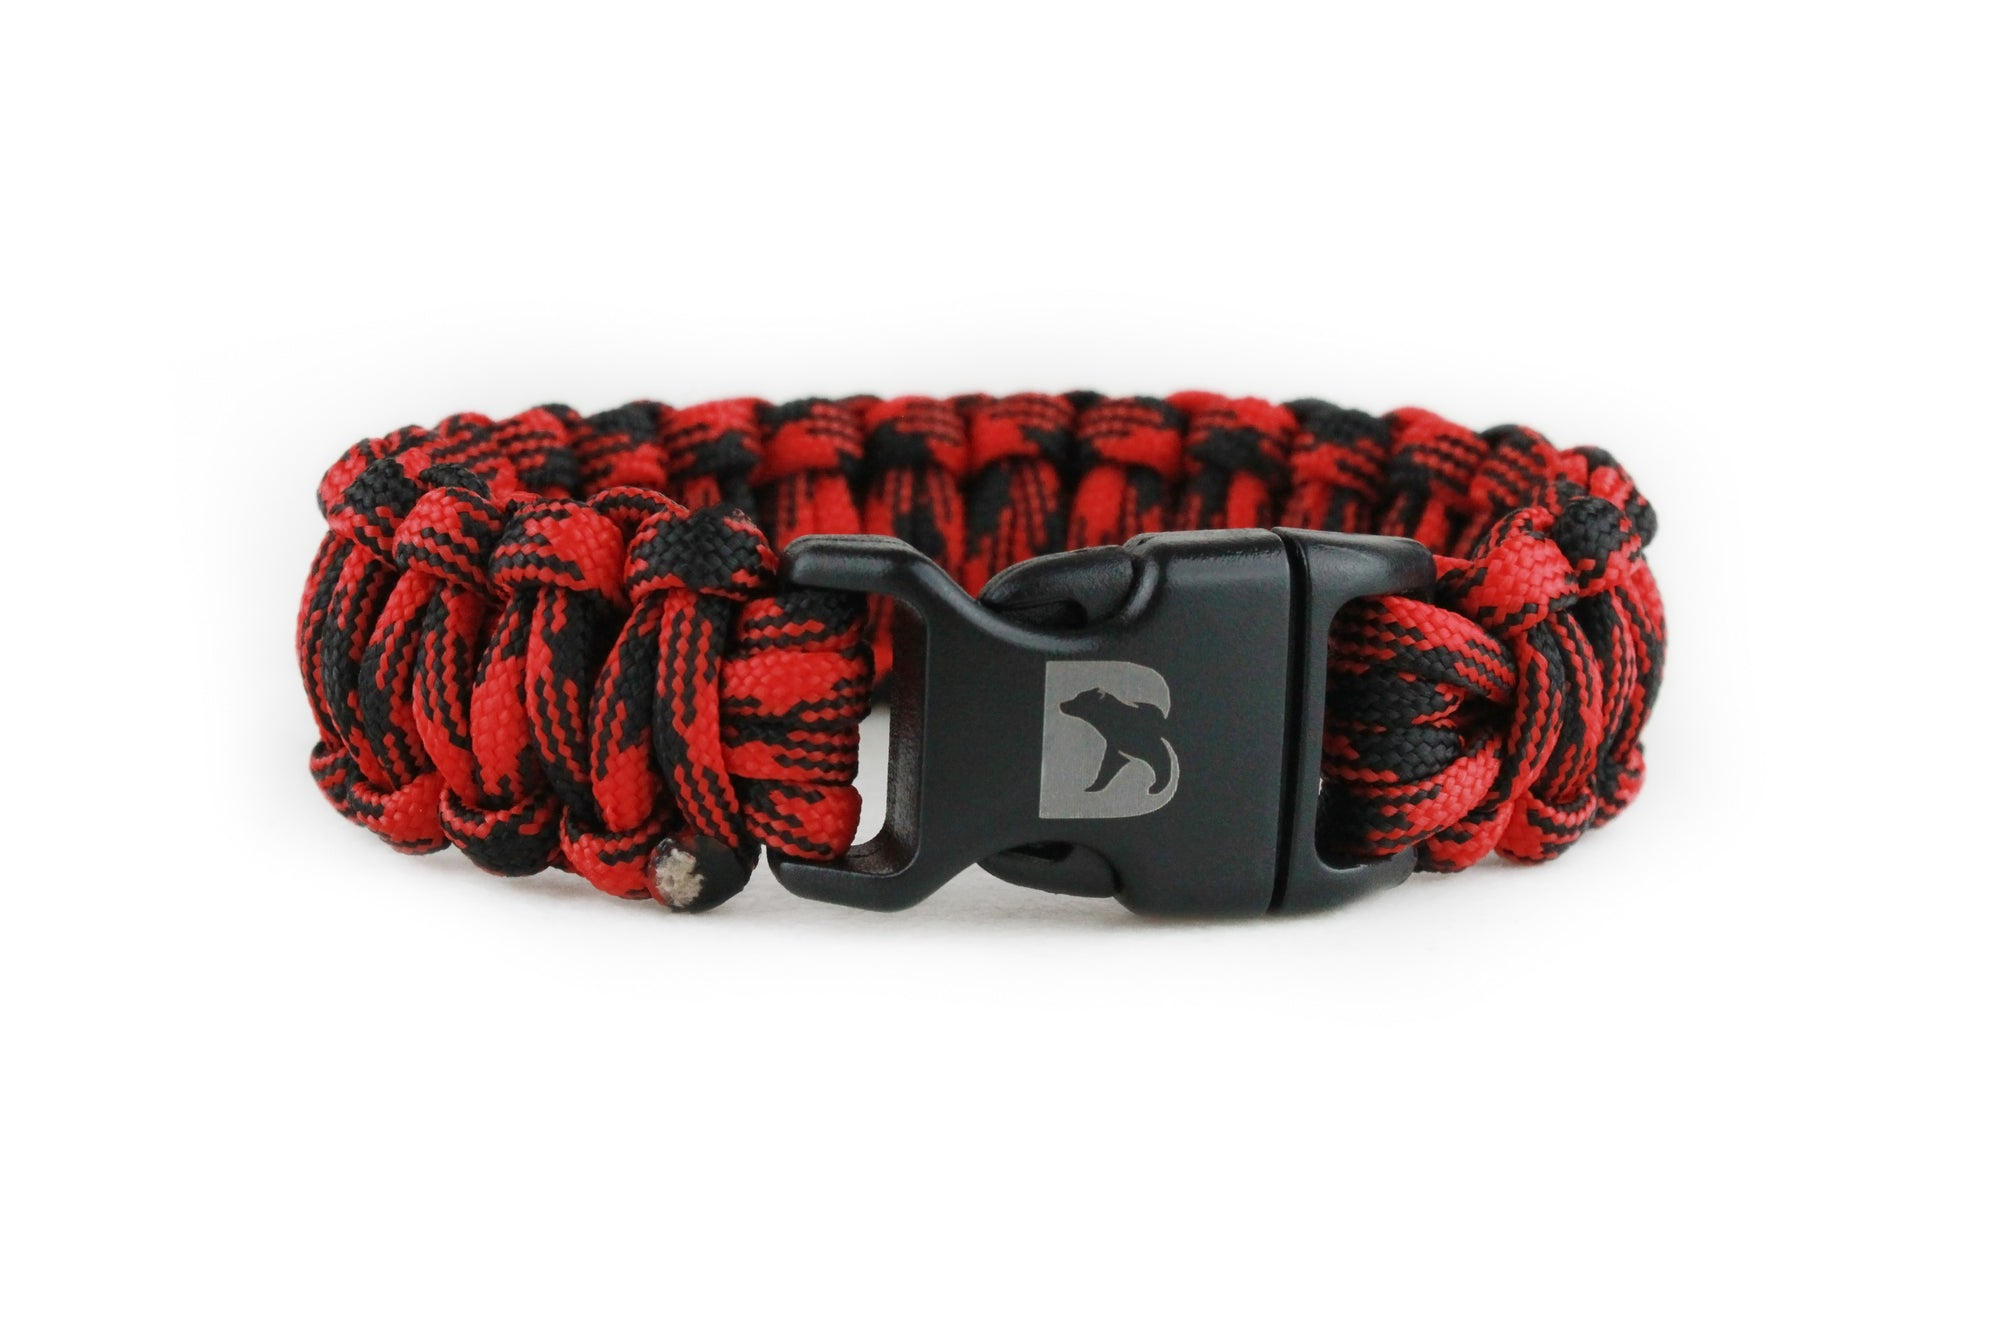 Black and Red Camo Paracord Bracelet